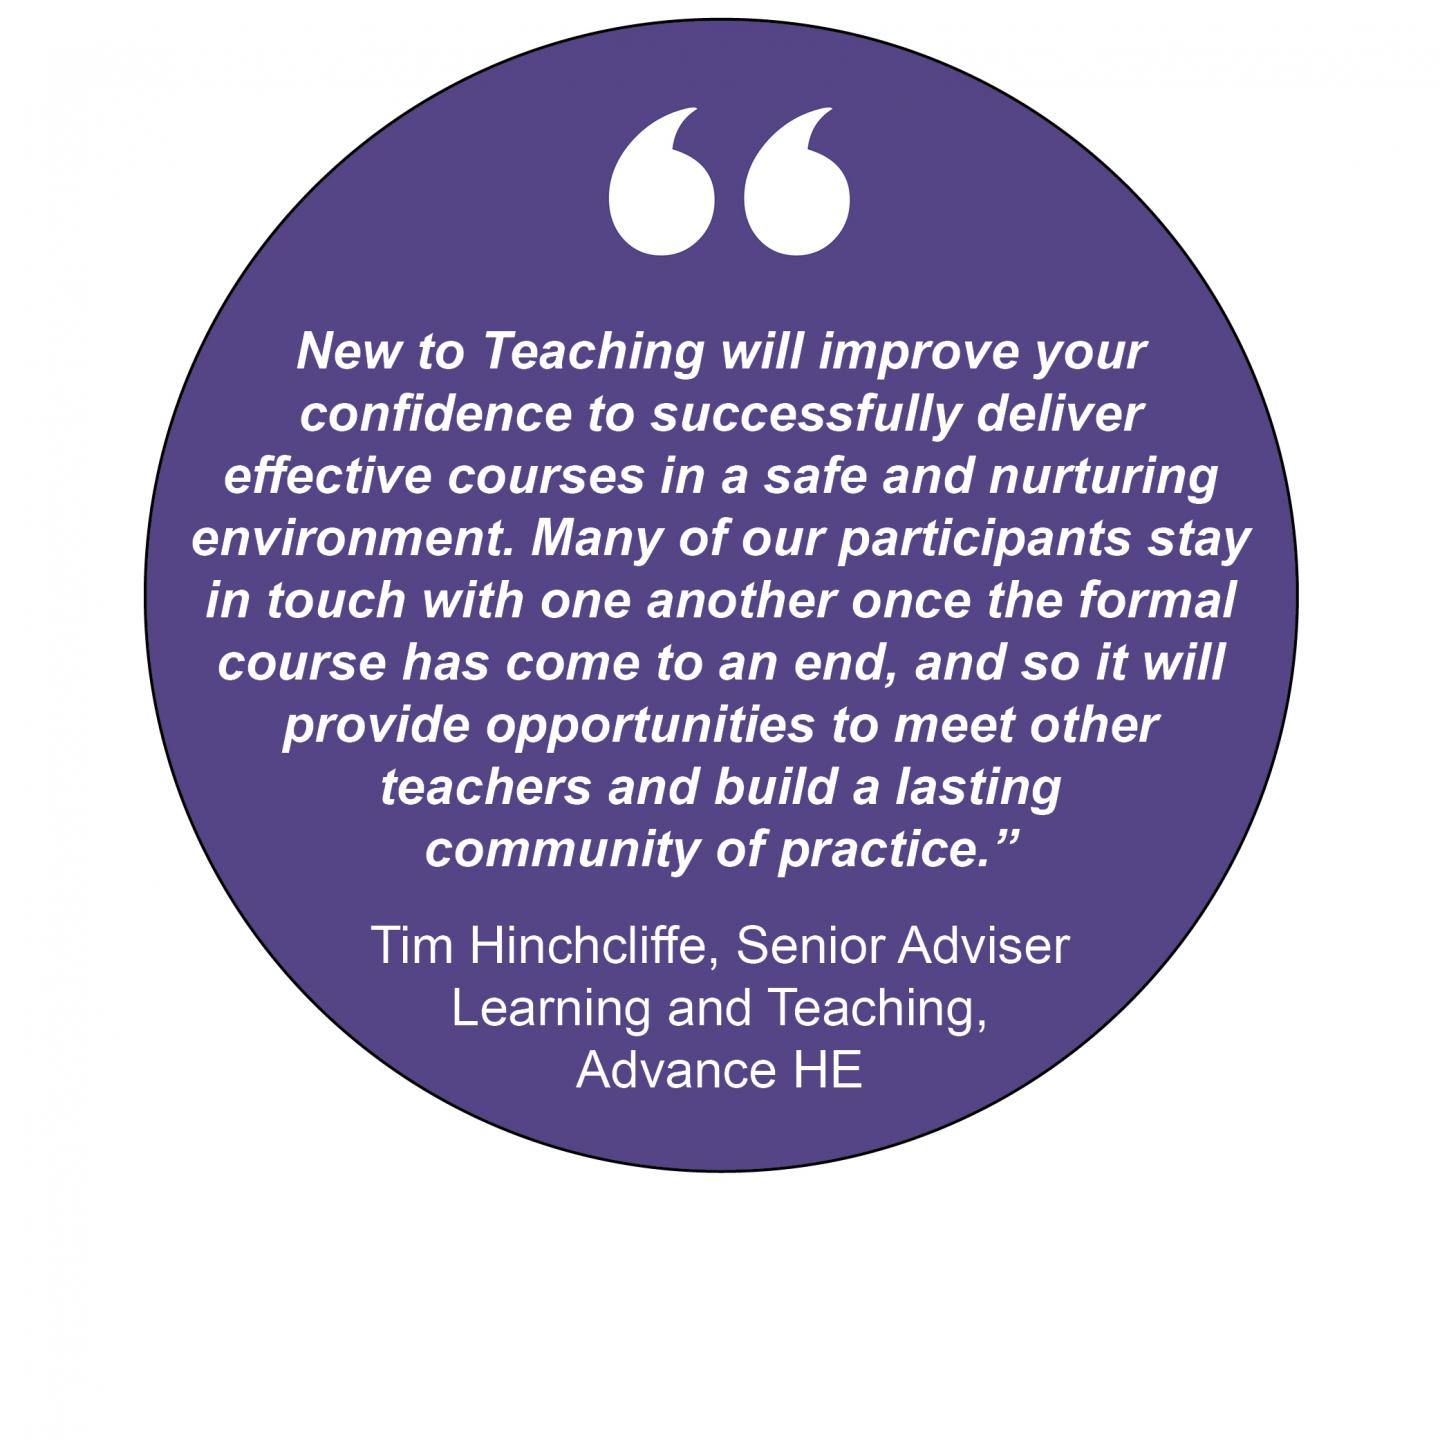 """New to Teaching will improve your confidence to successfully deliver effective courses in a safe and nurturing environment. Many of our participants stay in touch with one another once the formal course has come to an end, and so it will provide opportunities to meet other teachers and build a lasting community of practice."" Tim Hinchcliffe, Senior Adviser Learning and Teaching, Advance HE"